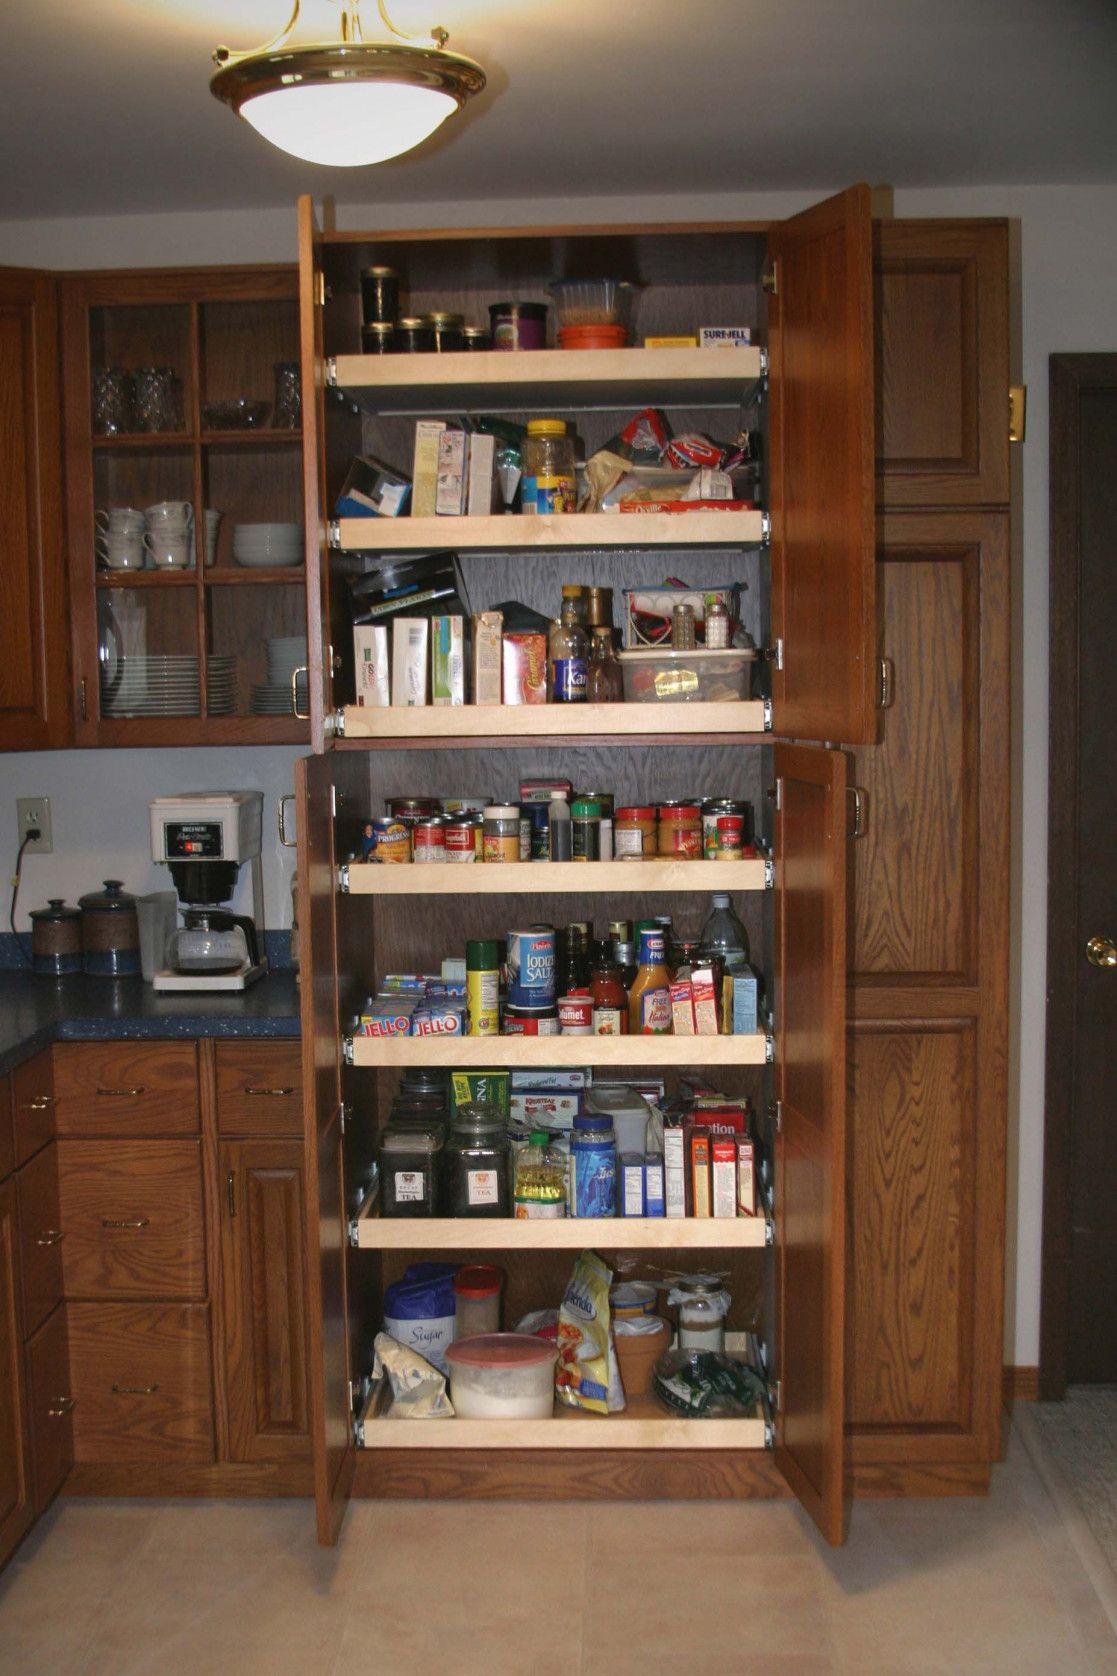 2018 36 Inch Pantry Cabinet Kitchen Cabinets Countertops Ideas Check More At Http Www Planetgr Pantry Cabinet Cheap Kitchen Cabinets Kitchen Cabinet Design